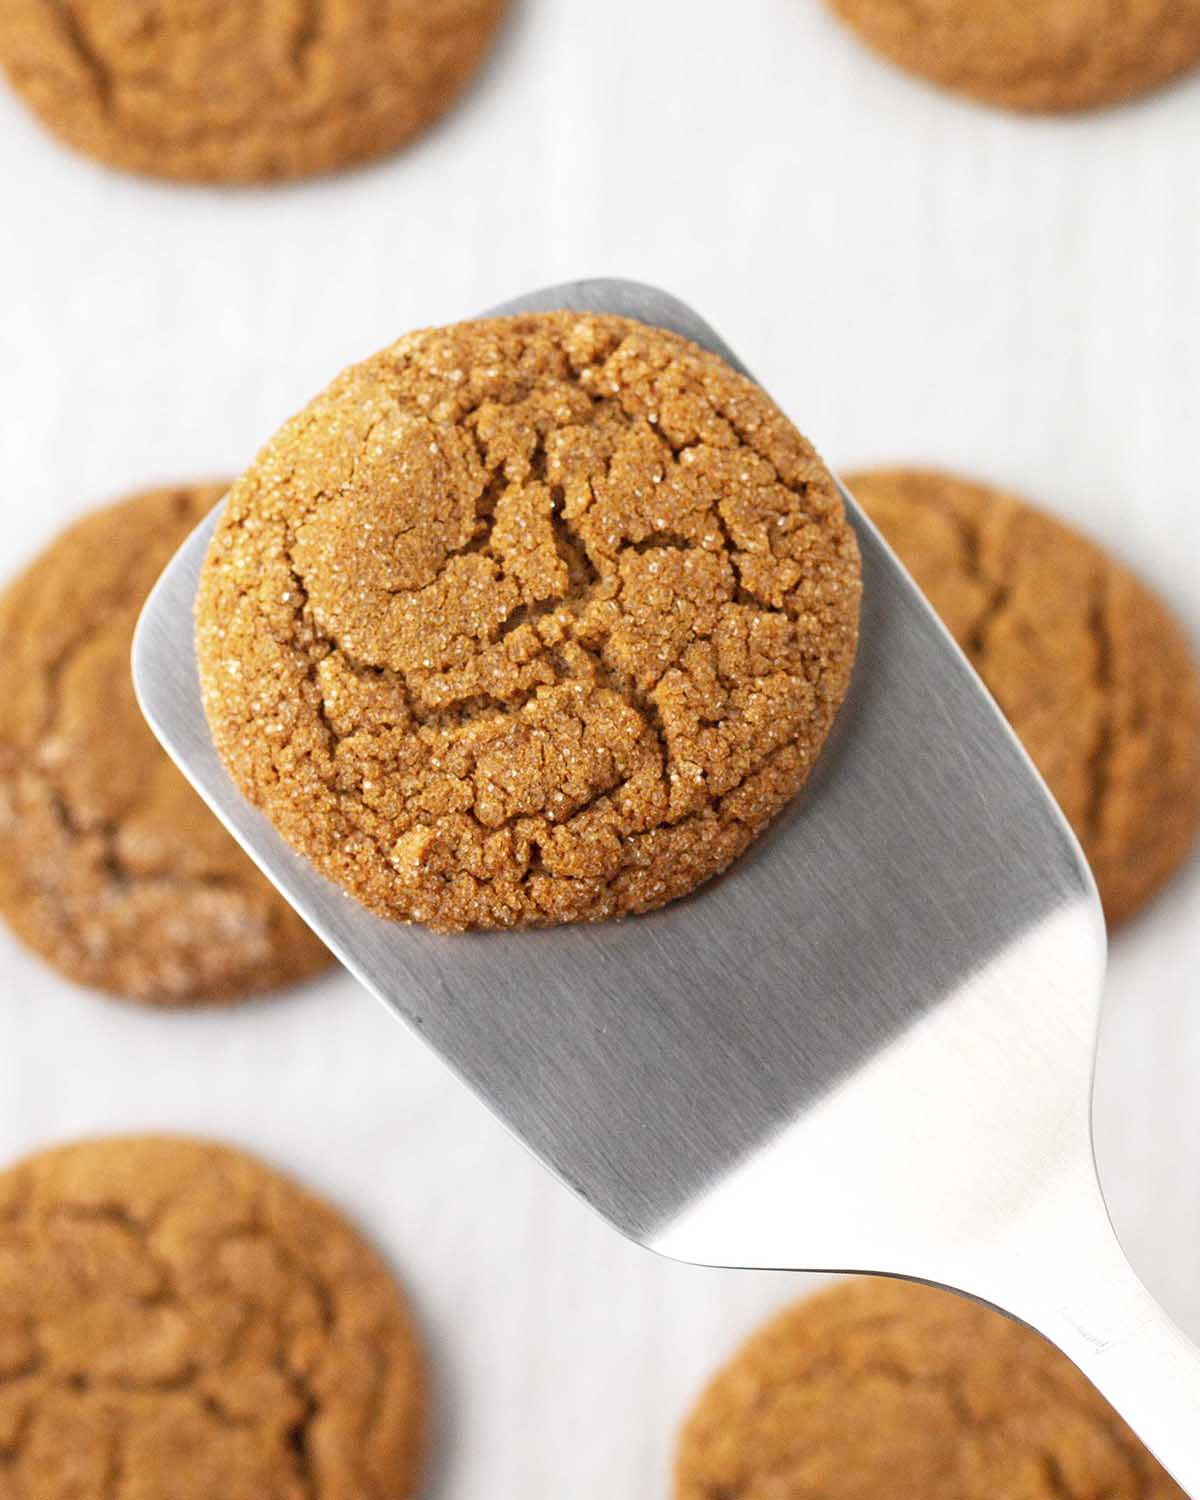 A metal spatula holding one molasses cookie over a pan of more freshly baked cookies.